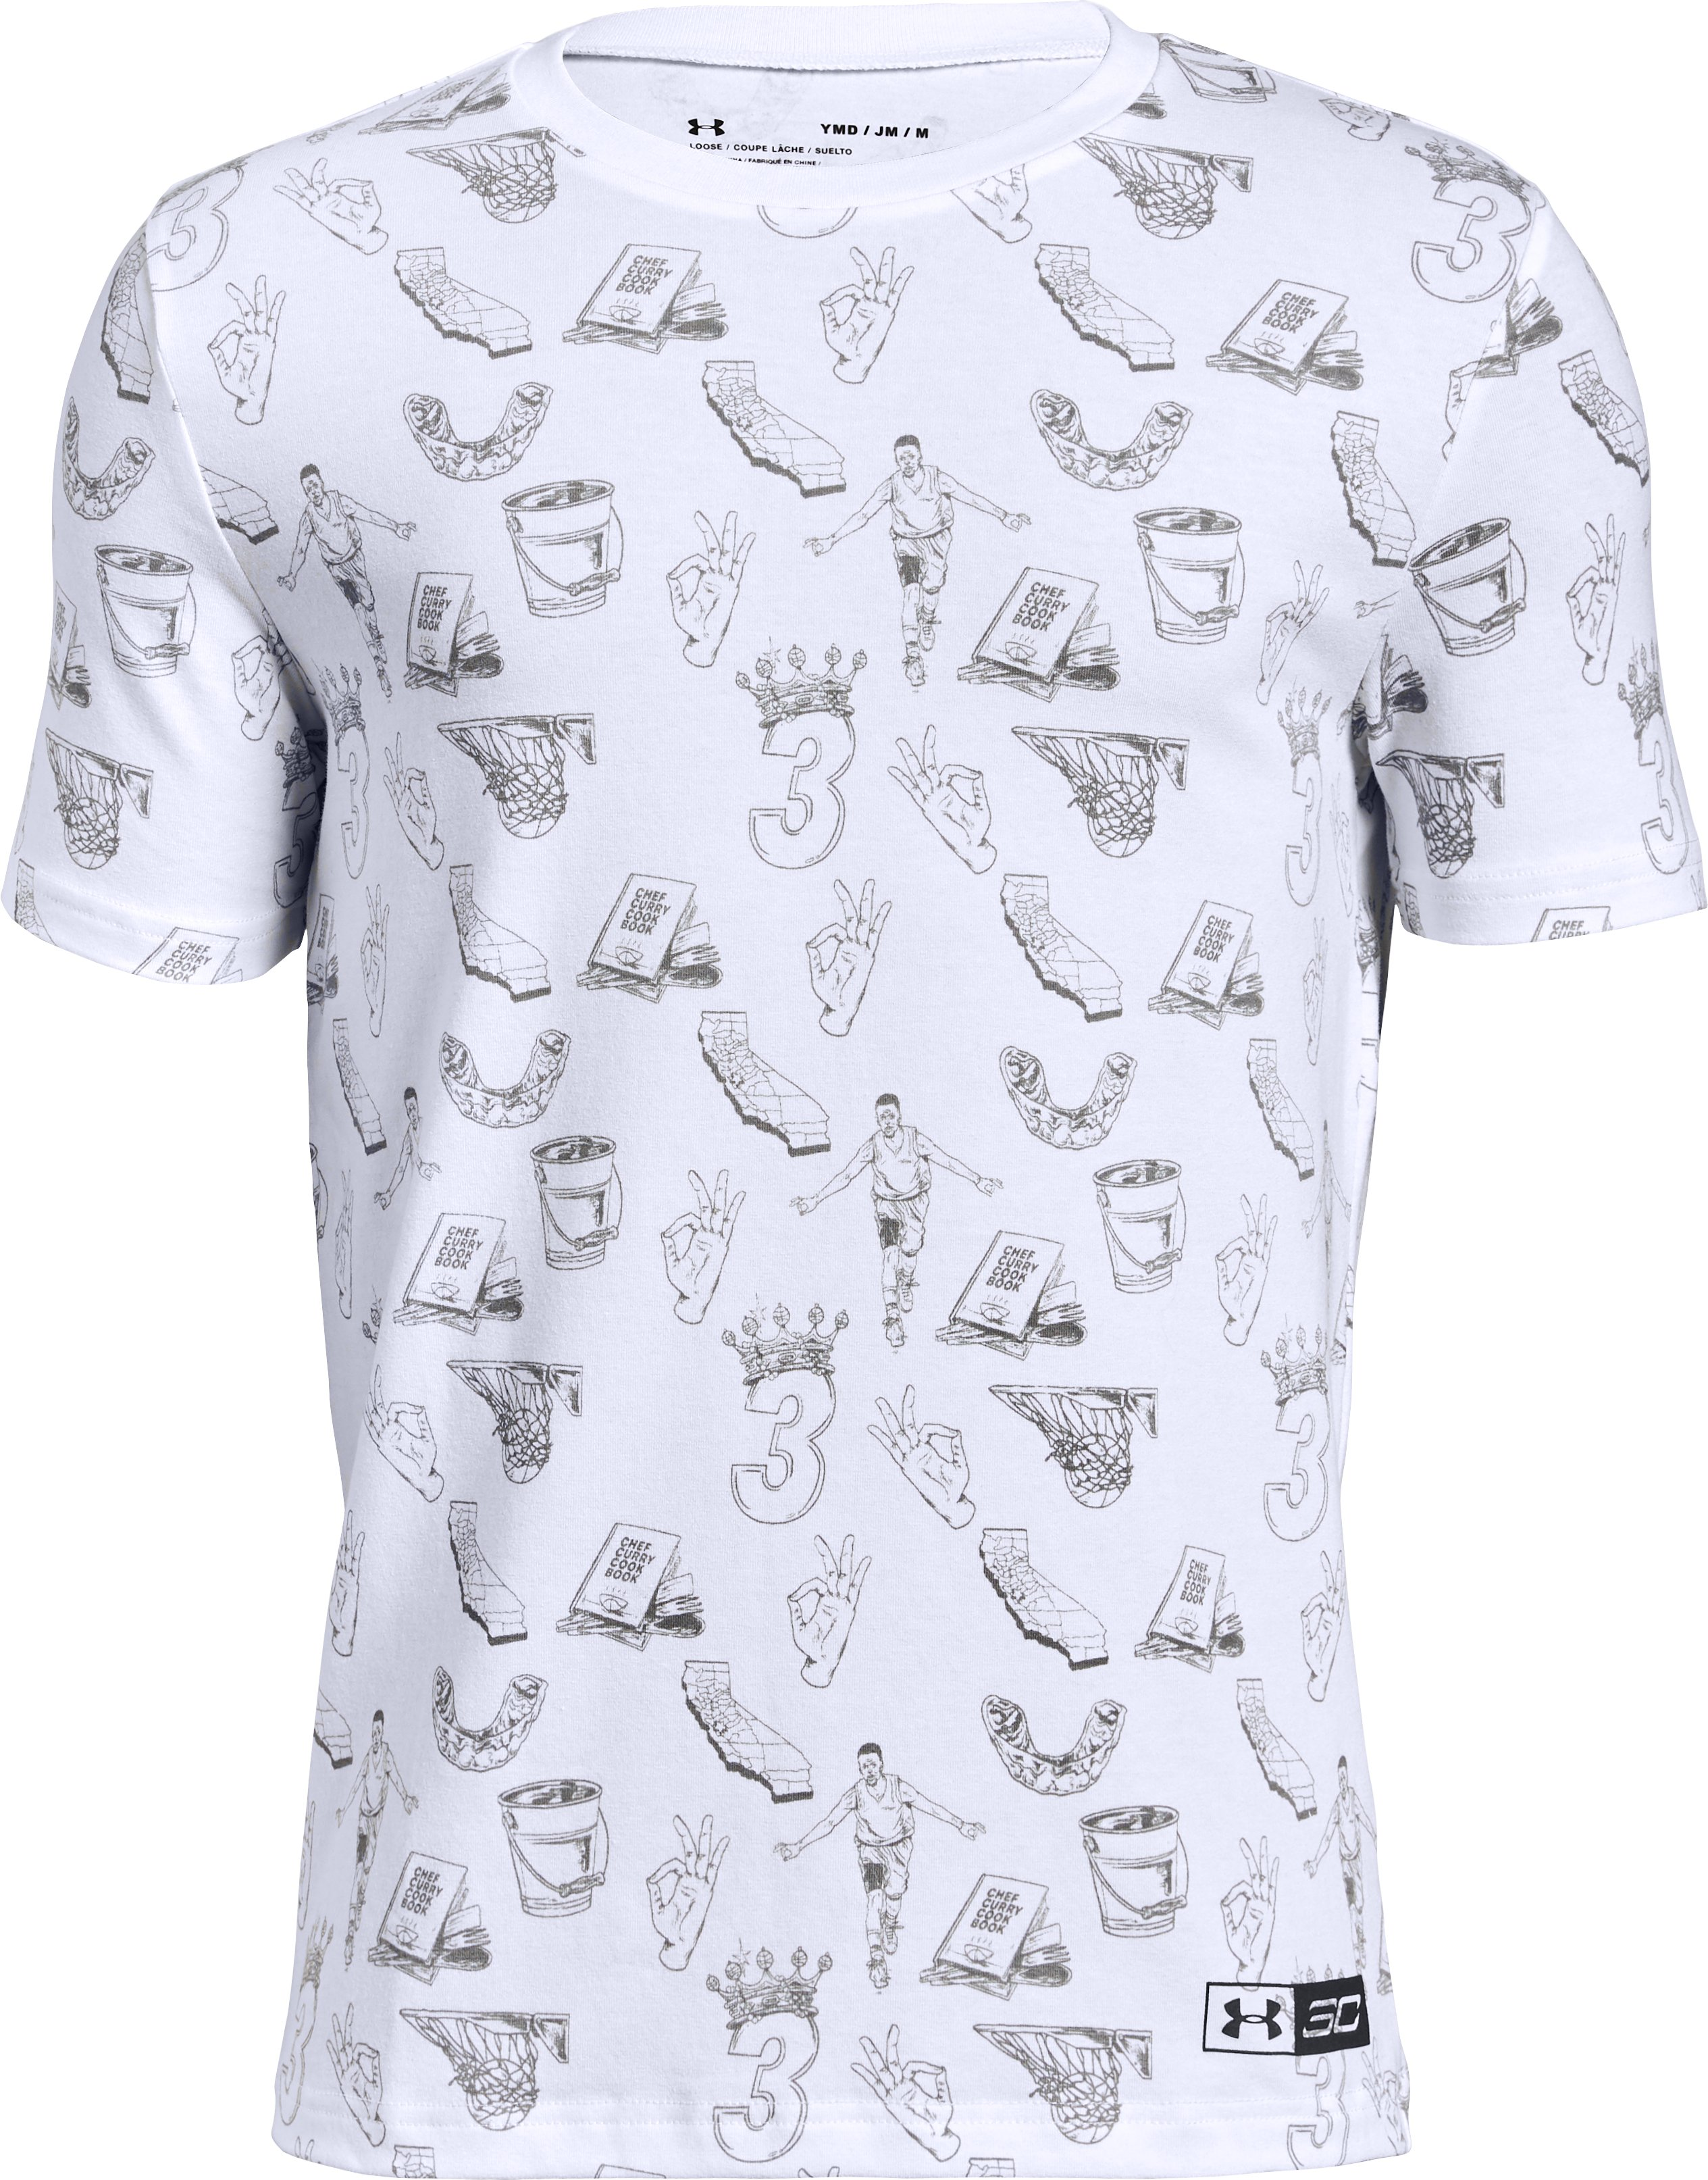 Boys' SC30 Printed Short Sleeve T-Shirt, White